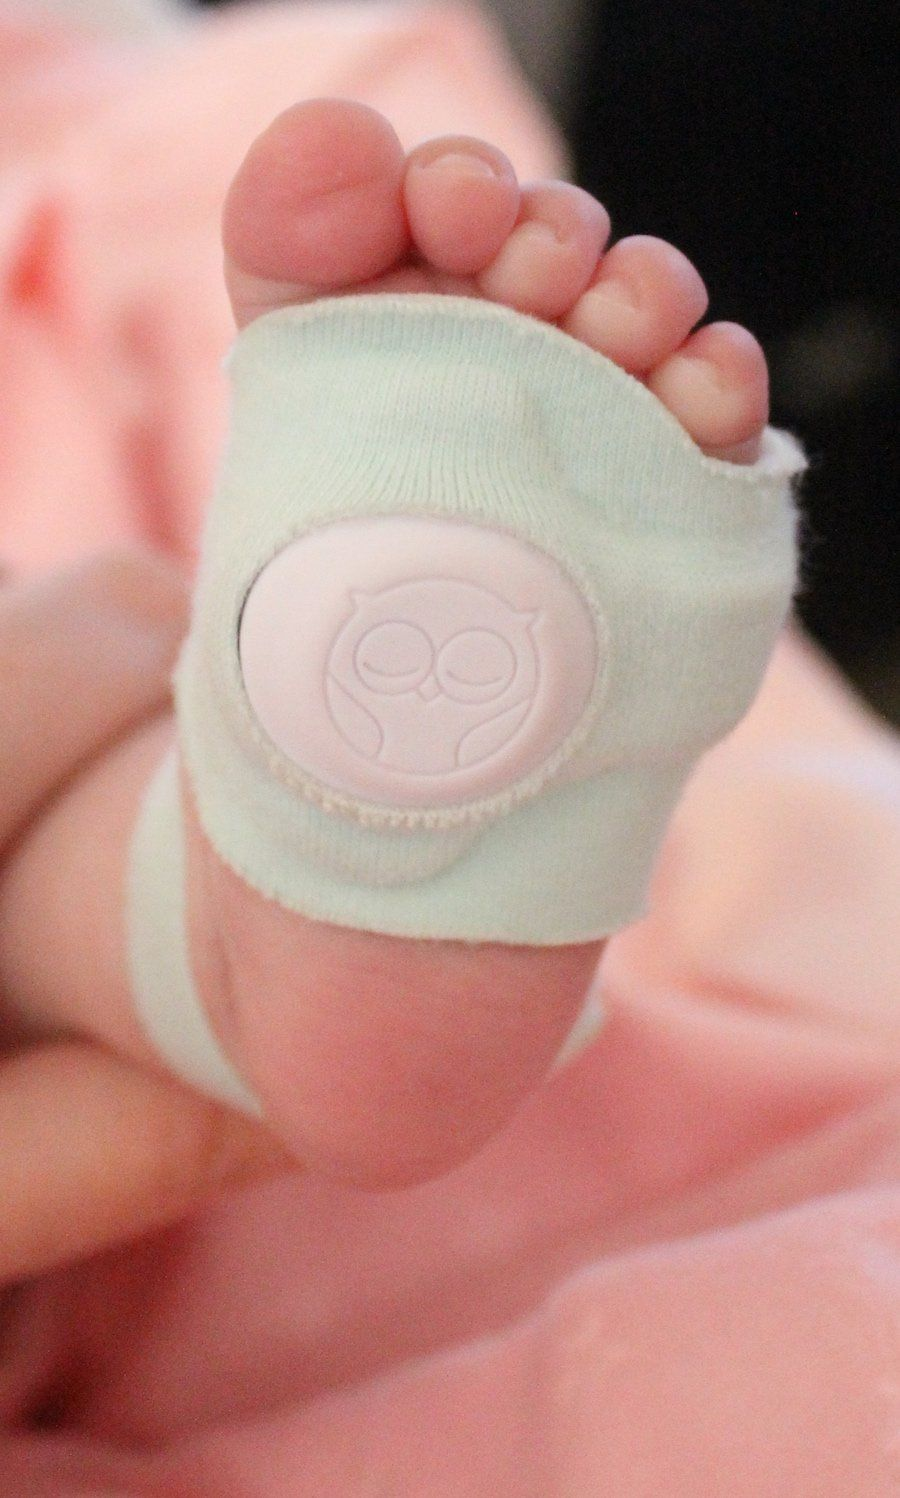 Baby bed heartbeat - Baby Products That Allow Better Sleep For Parents My Thirty Spot